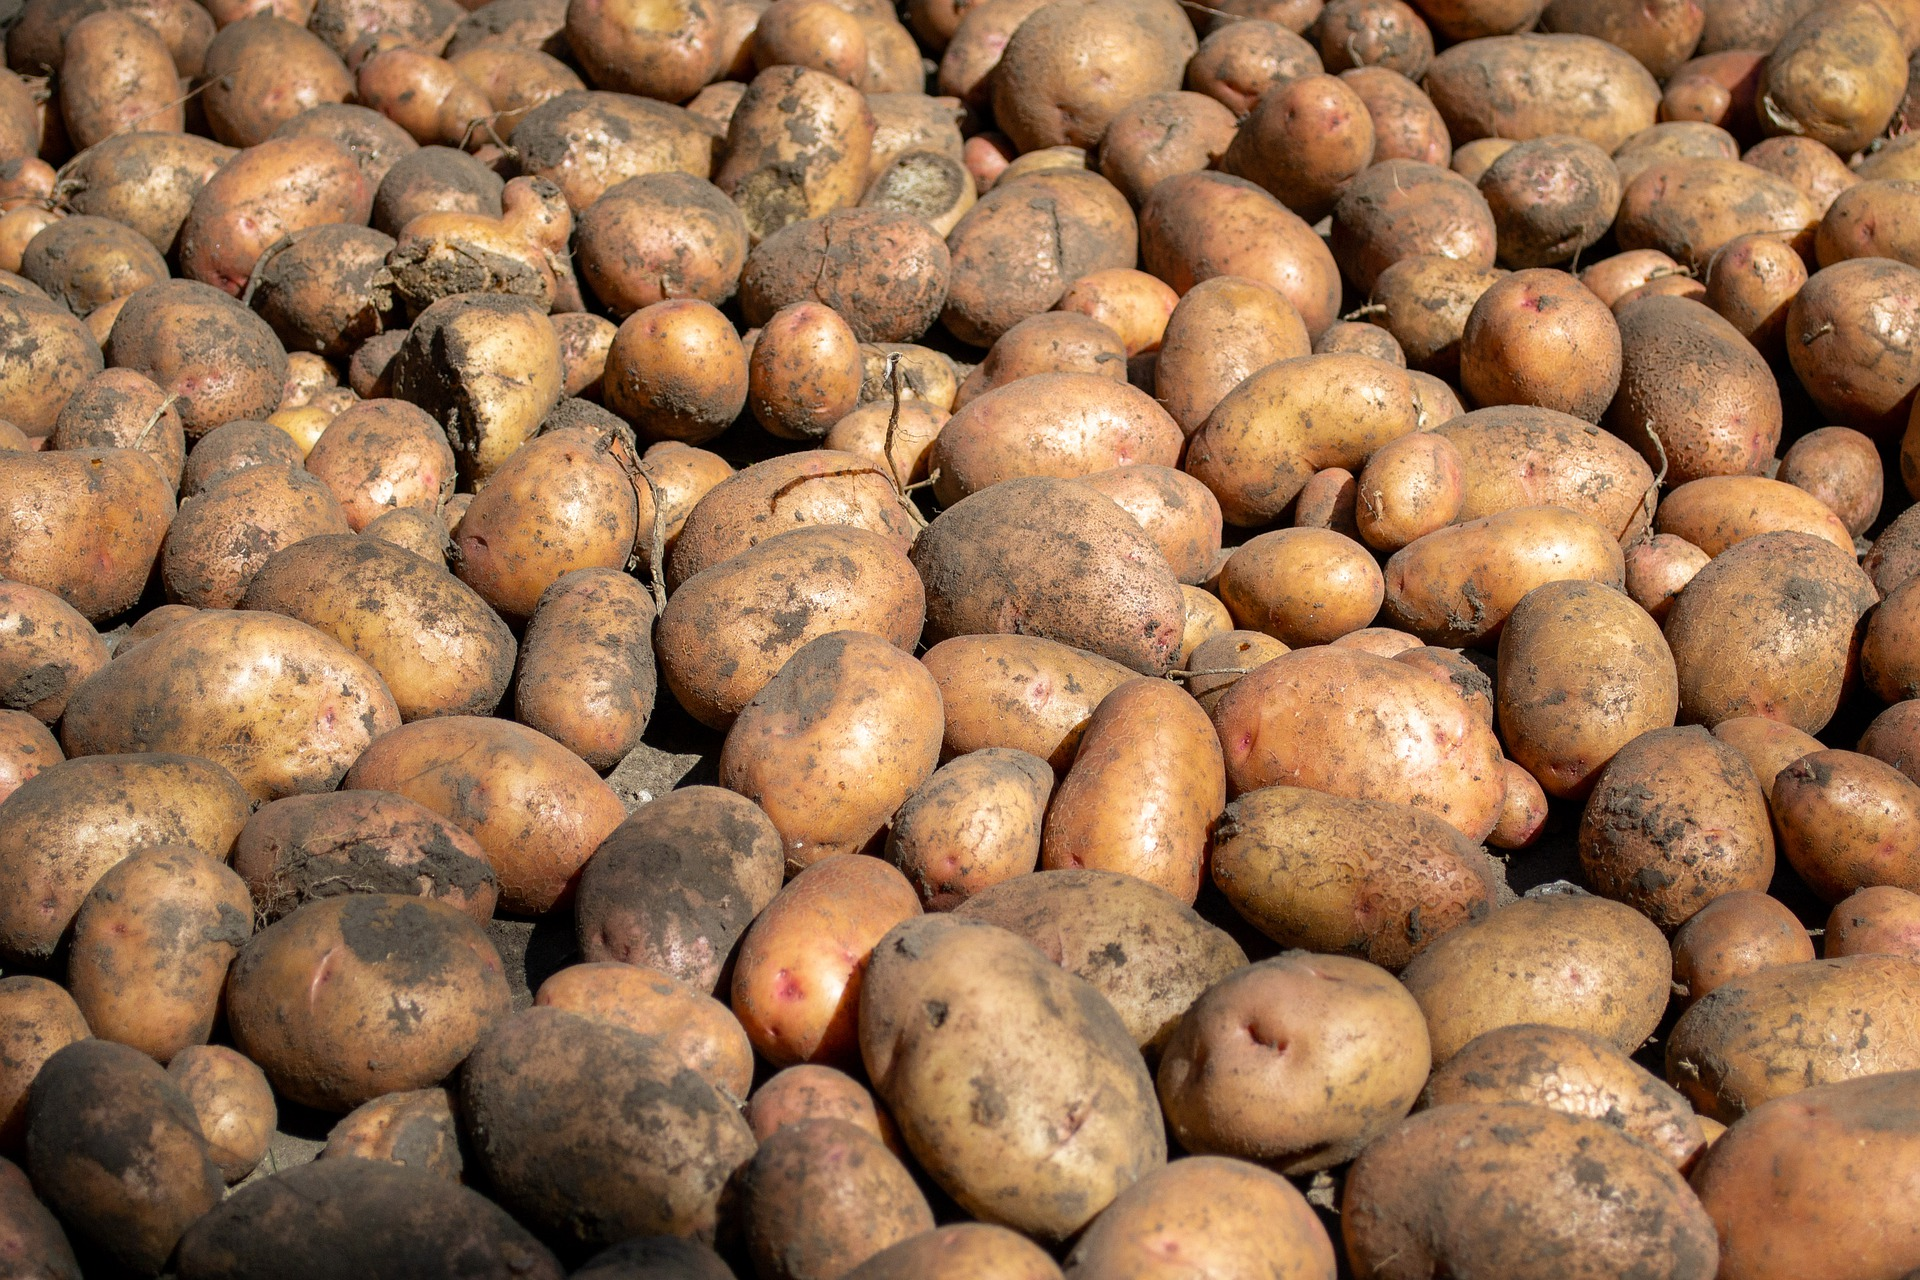 potatoes-5528924_1920